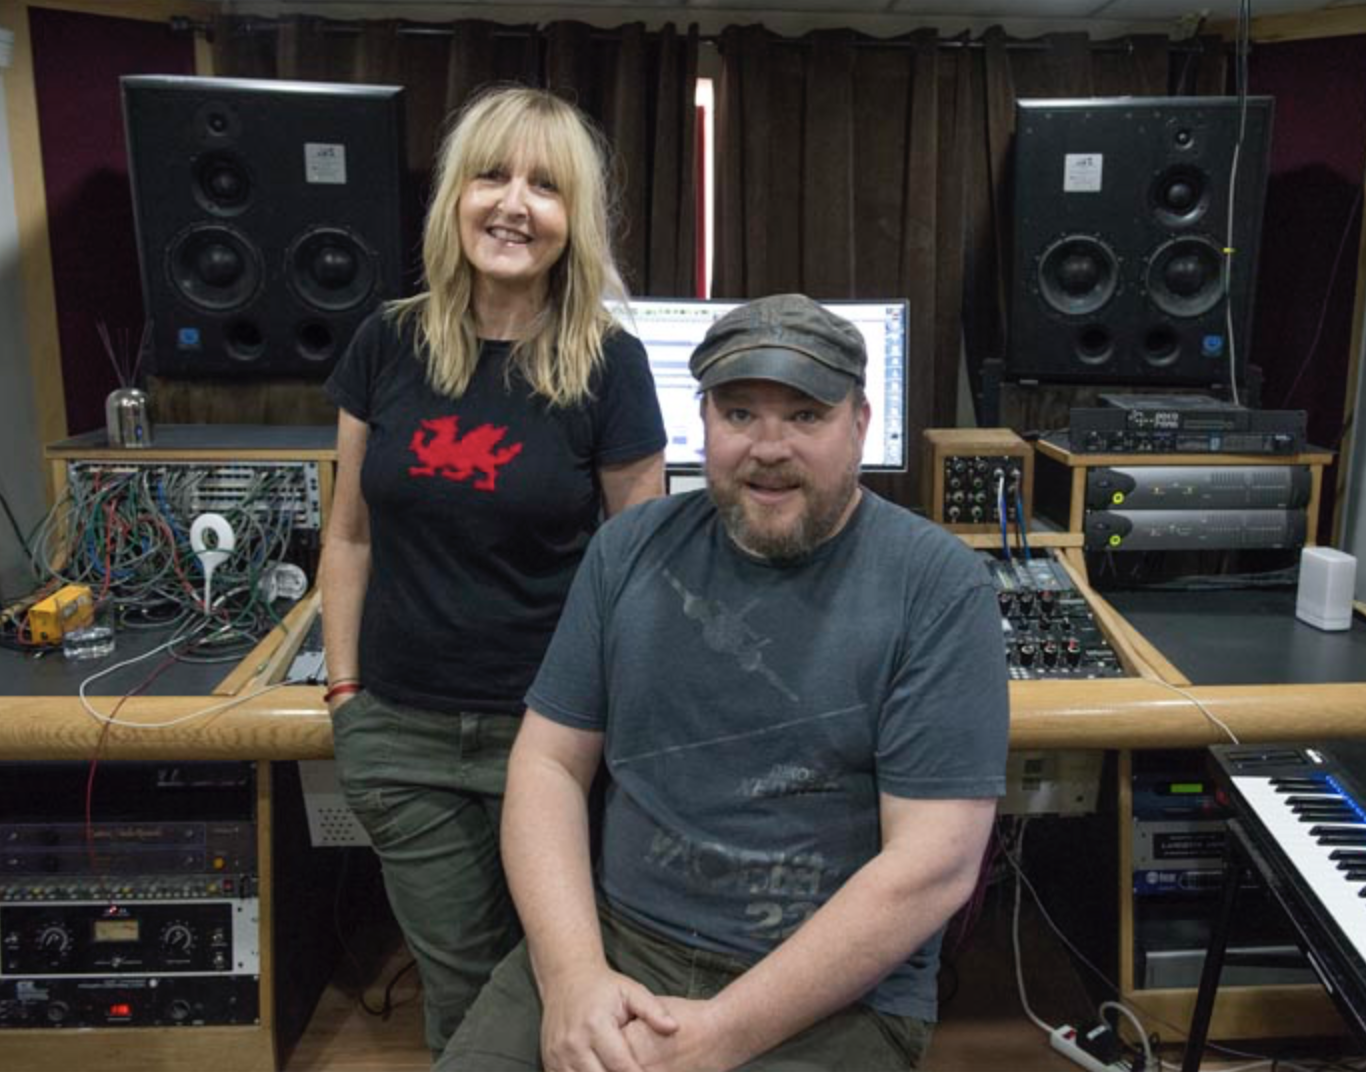 Platinum award-winning songstress Donna Lewis joins forces with producer, arranger, mixer and engineer David Baron on his latest offering and cover of the Kate Bush hit 'Running Up That Hill' hitting digital stores near you in August 2019 on Woking, UK, record label Here and Now Recordings. Donna Lewis, mostly known for her global hit 'I Love You, Always Forever' ramping up over 60 million You Tube plays, and upwards of 58 million Spotify streams gained extensive MTV plays, reached No 1 on the US Billboard Hot 100 Airplay chart and ultimately achieved Platinum status. Her collaboration with progressive house duo Project 46 & DubVision 'You and I' on Spinnin' Records reached Top 5 on the Beatport chart. Lewis also featured in the film 'Anastasia' in a duo alongside Richard Marx for 'At the Beginning'. This reached number two on the US Adult Contemporary chart.  This single follows on from 'Bad Bad Love' also with Donna Lewis which in turn comes after 'People of No Concern' (feat. Lettie & Madeleine) which saw support from Clash Magazine. The New York-born David Baron has an extensive list of credentials including work alongside The Lumineers, Lenny Kravitz, Peter Murphy (Bauhaus), Simone Felice, Shawn Mendes, Meghan Trainor, Melanie De Biasio, Bat For Lashes, Jade Bird, Vance Joy, Matt Maeson, Conor Oberst and Phoebe Bridgers andMichael Jackson. He has been featured by the likes of Rolling Stone, Billboard, Earmilk, Consequence of Sound, Harper's Bazaar, The Line of Best Fit, NBC San Diego and CNN Heroes and received radio airplay from BBC 6 Music's Nemone and BBC Radio 3's Nick Luscombe. He also mixed and performed on The Lumineers upcoming 2019 album, as well as mix a new song with them for the Game Of Thrones soundtrack.